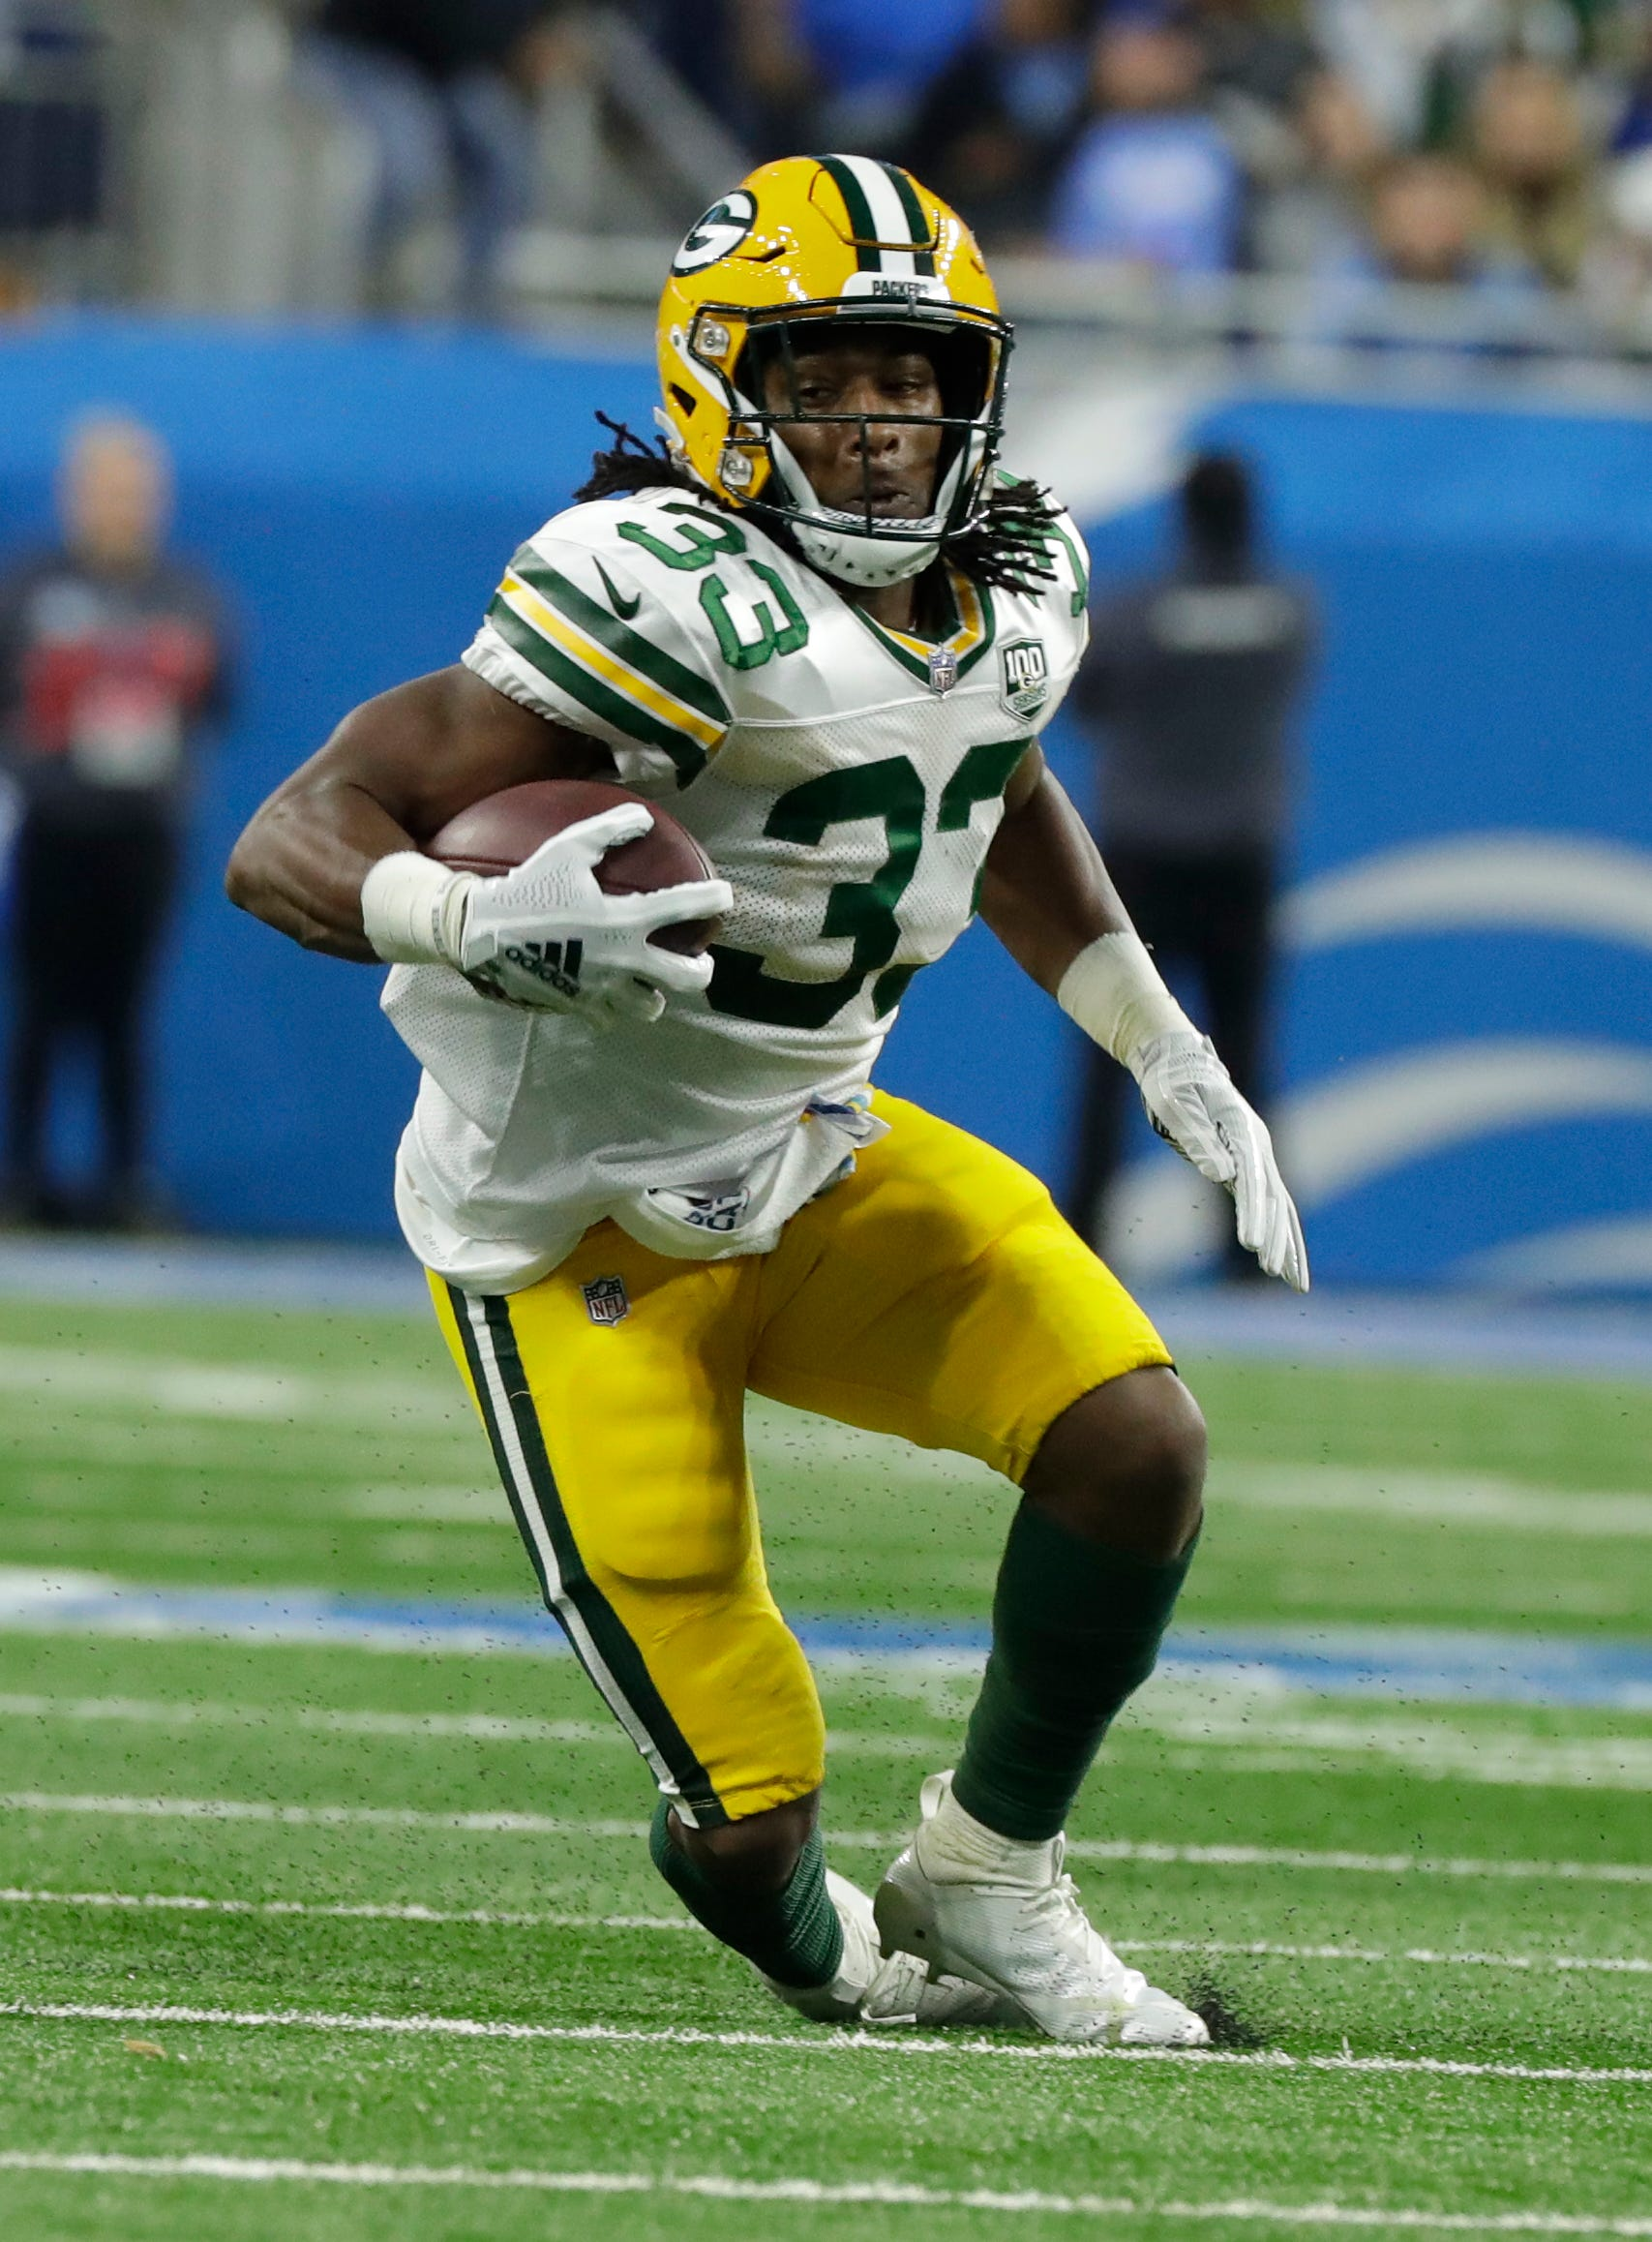 Packers coach Mike McCarthy: There's more to Aaron Jones' playing time than stats